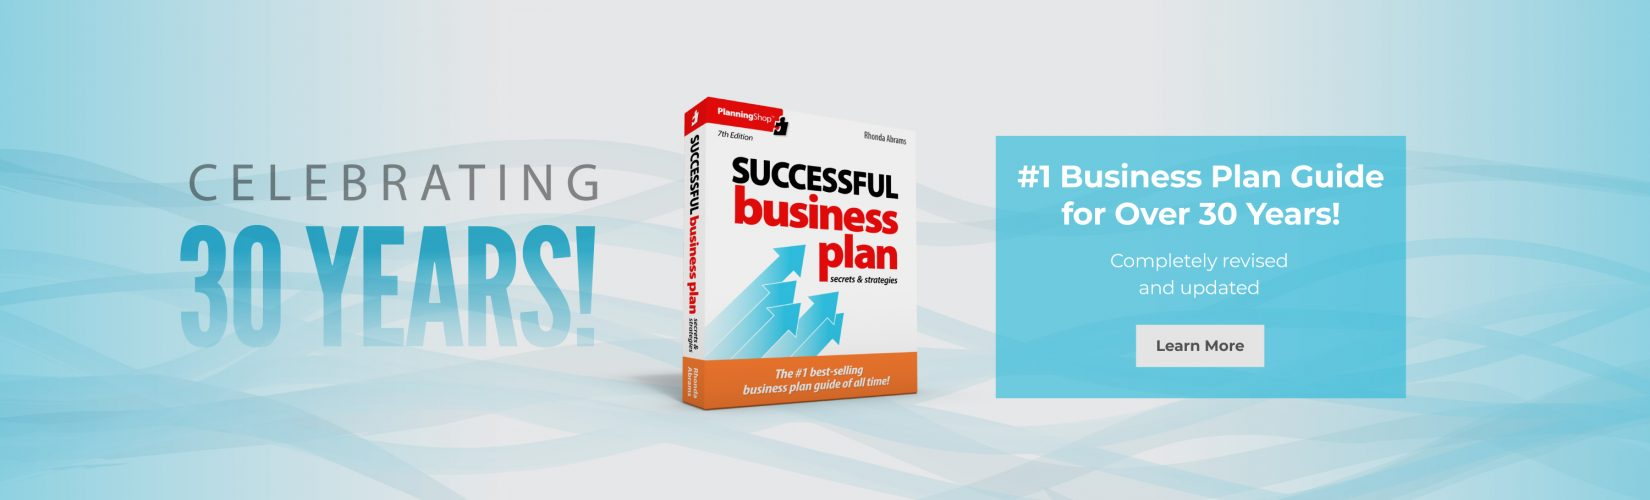 #1 Business Plan Guide for Over 30 Years!